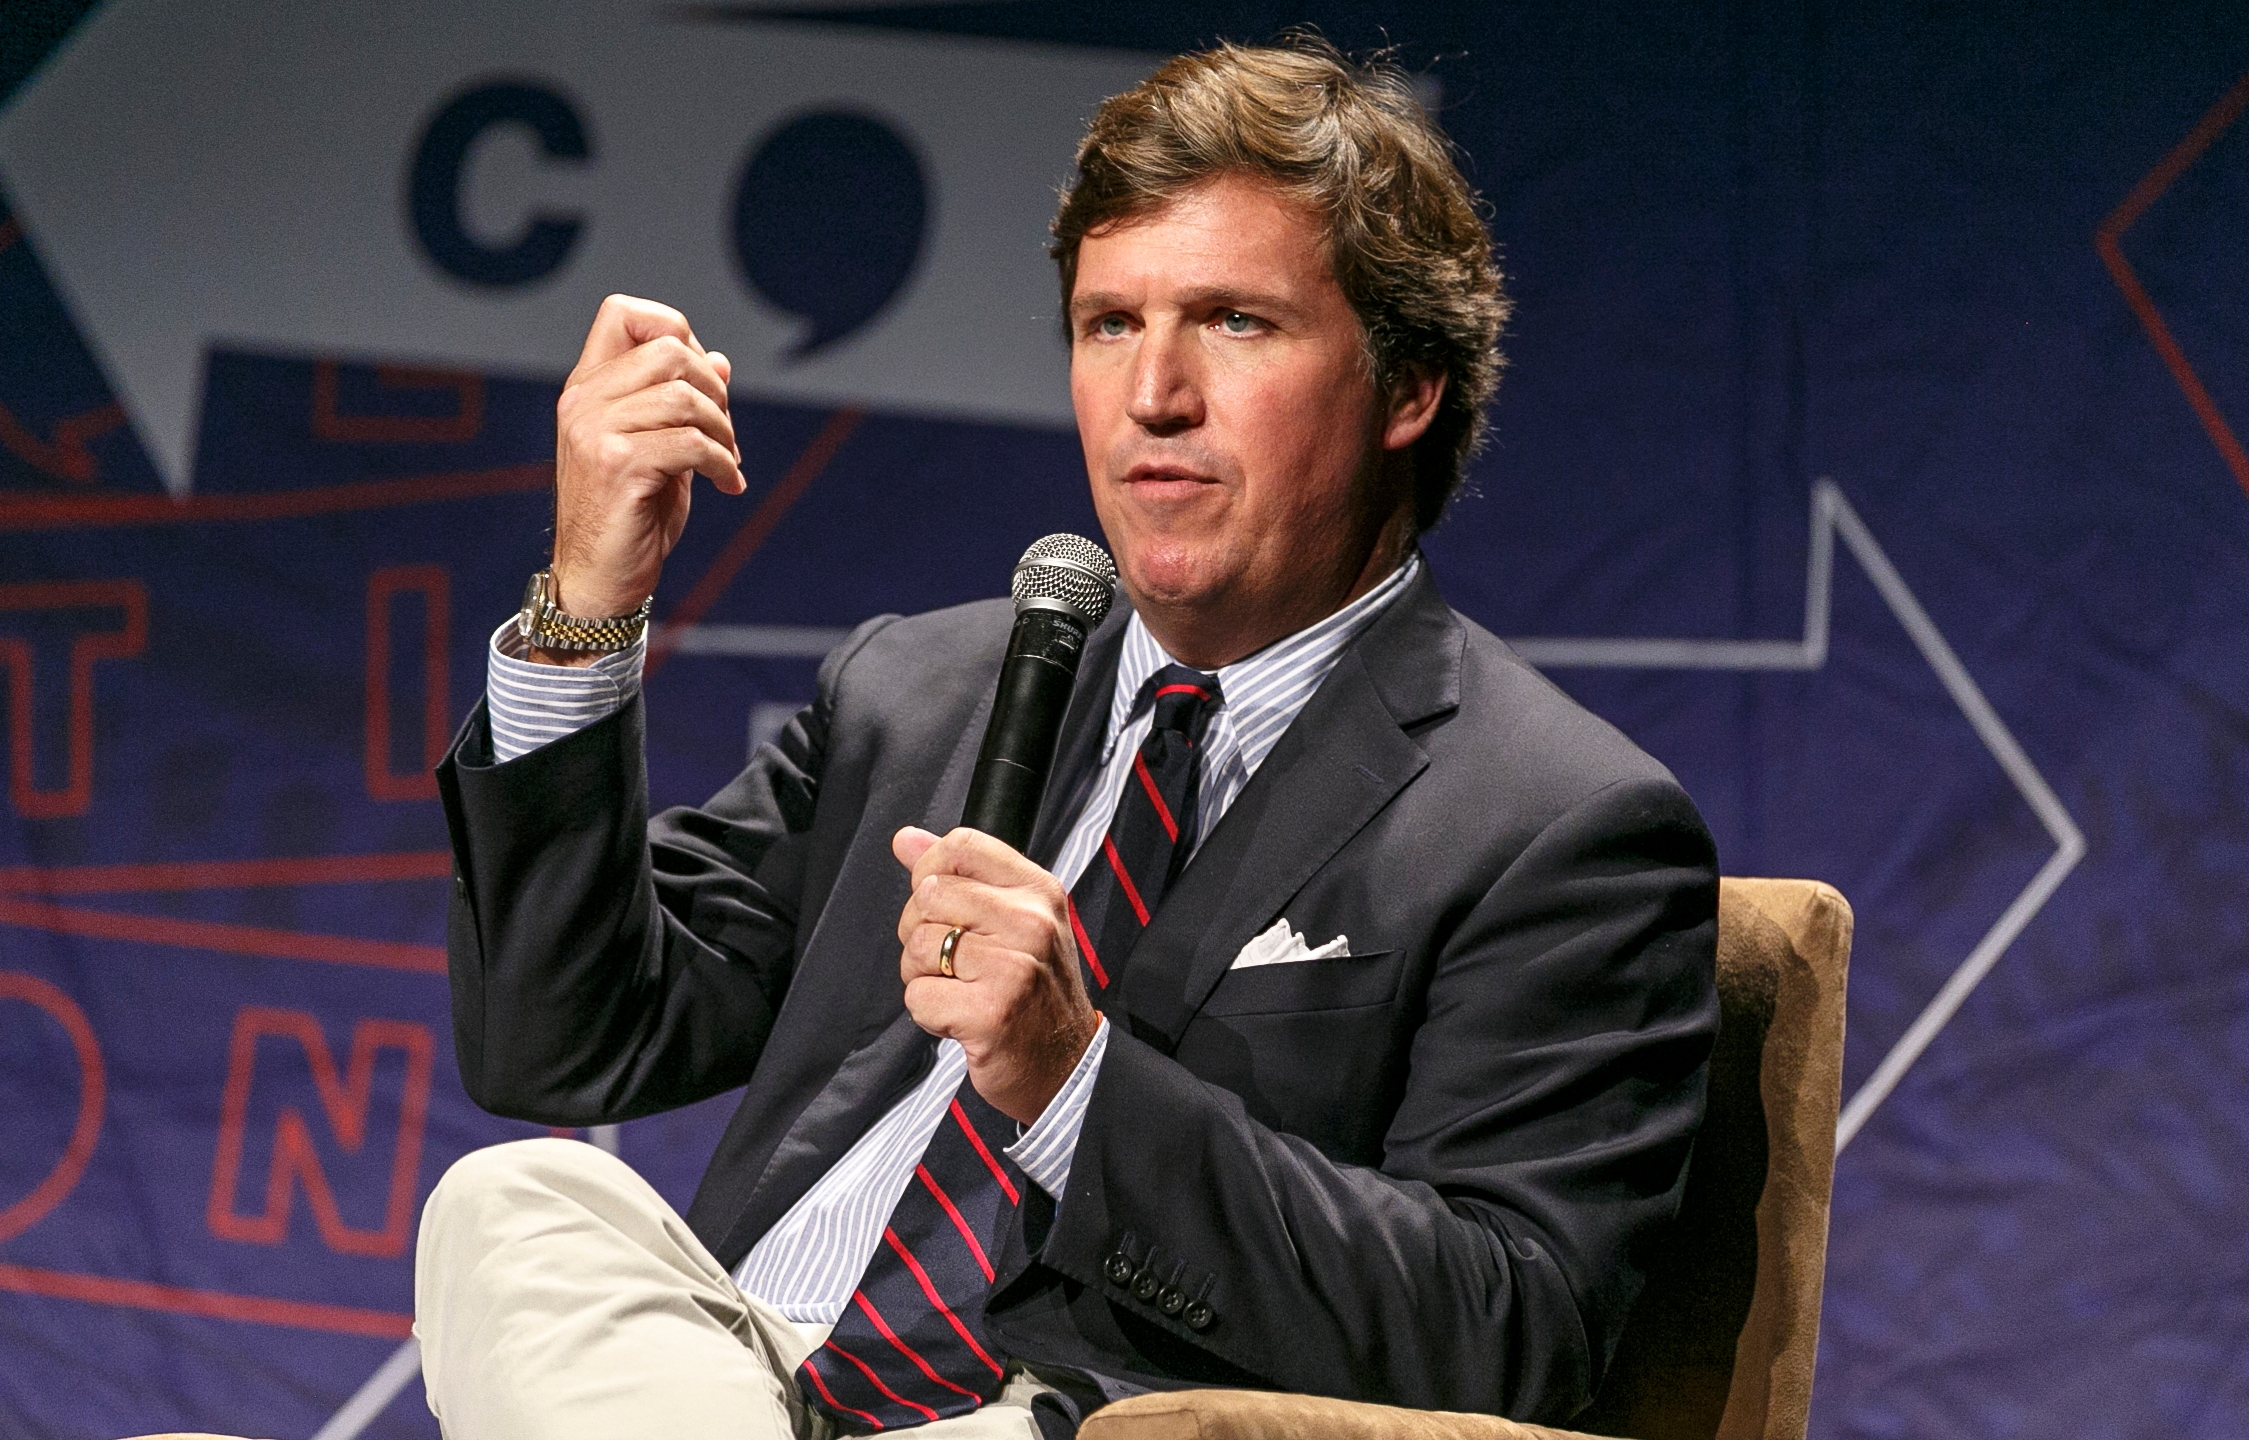 Tucker Carlson speaks onstage during Politicon 2018 at Los Angeles Convention Center on October 21, 2018 in Los Angeles, California. (Credit: Rich Polk/Getty Images for Politicon)